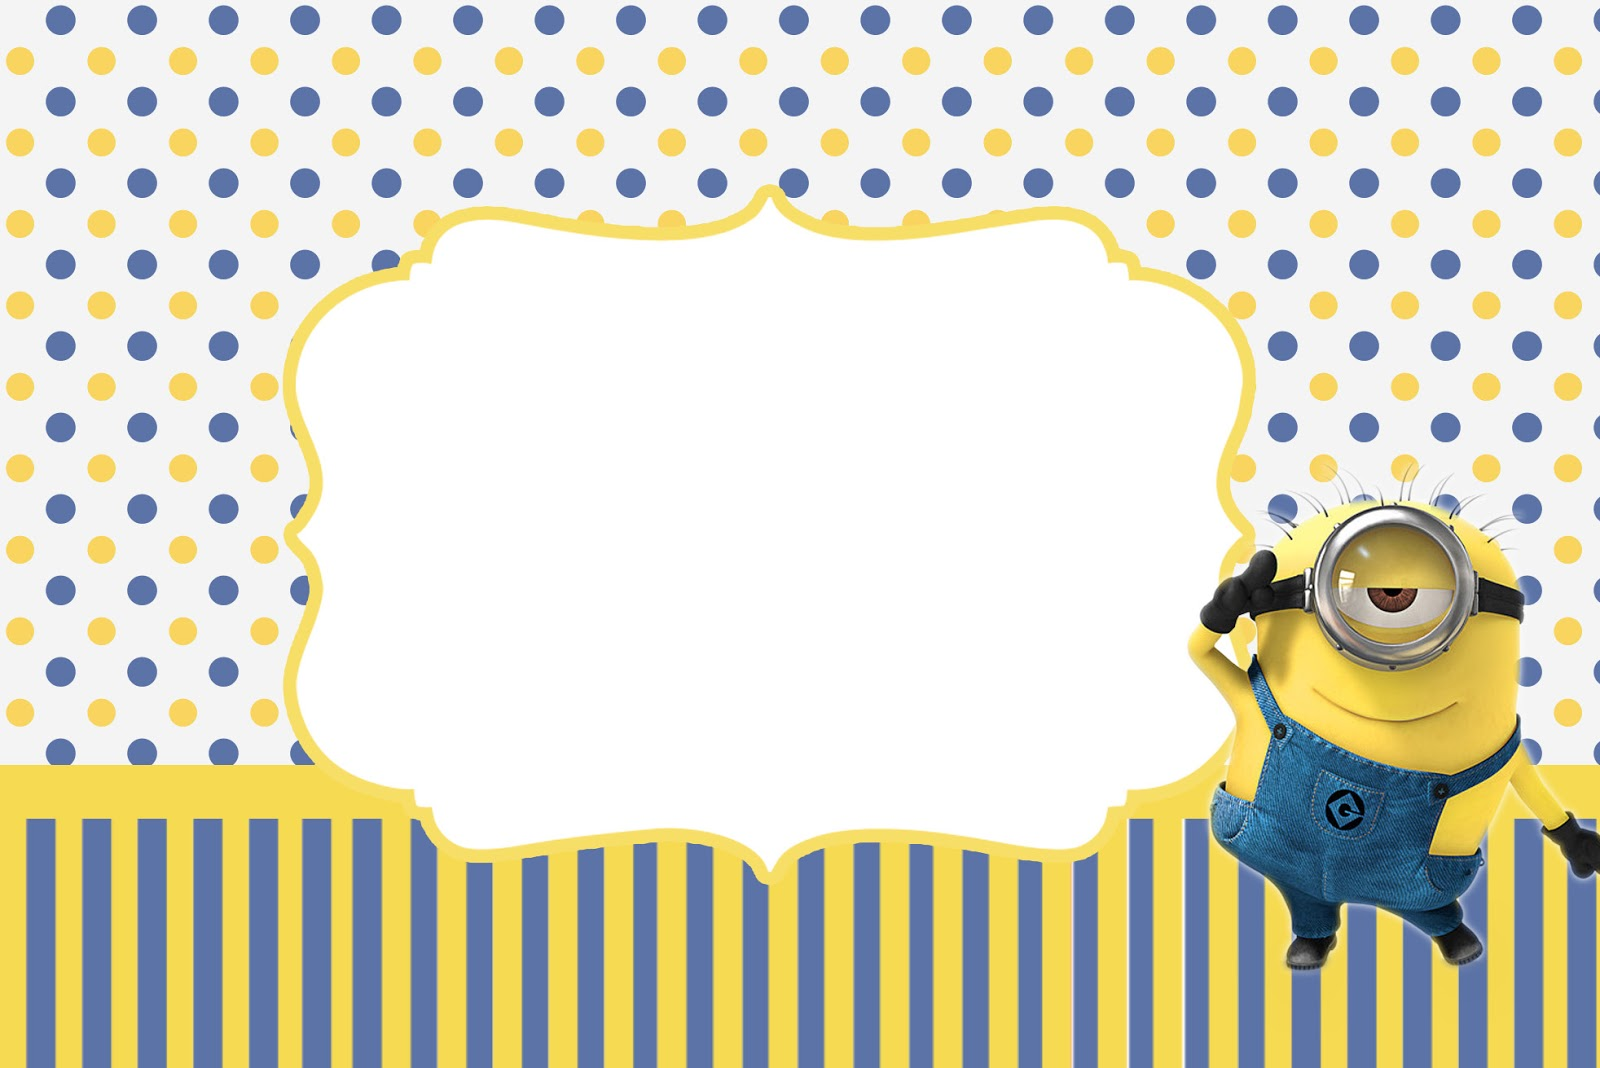 image about Minions Printable Invitations called Impressed inside of Minions Get together Invites, Cost-free Printables. - Oh